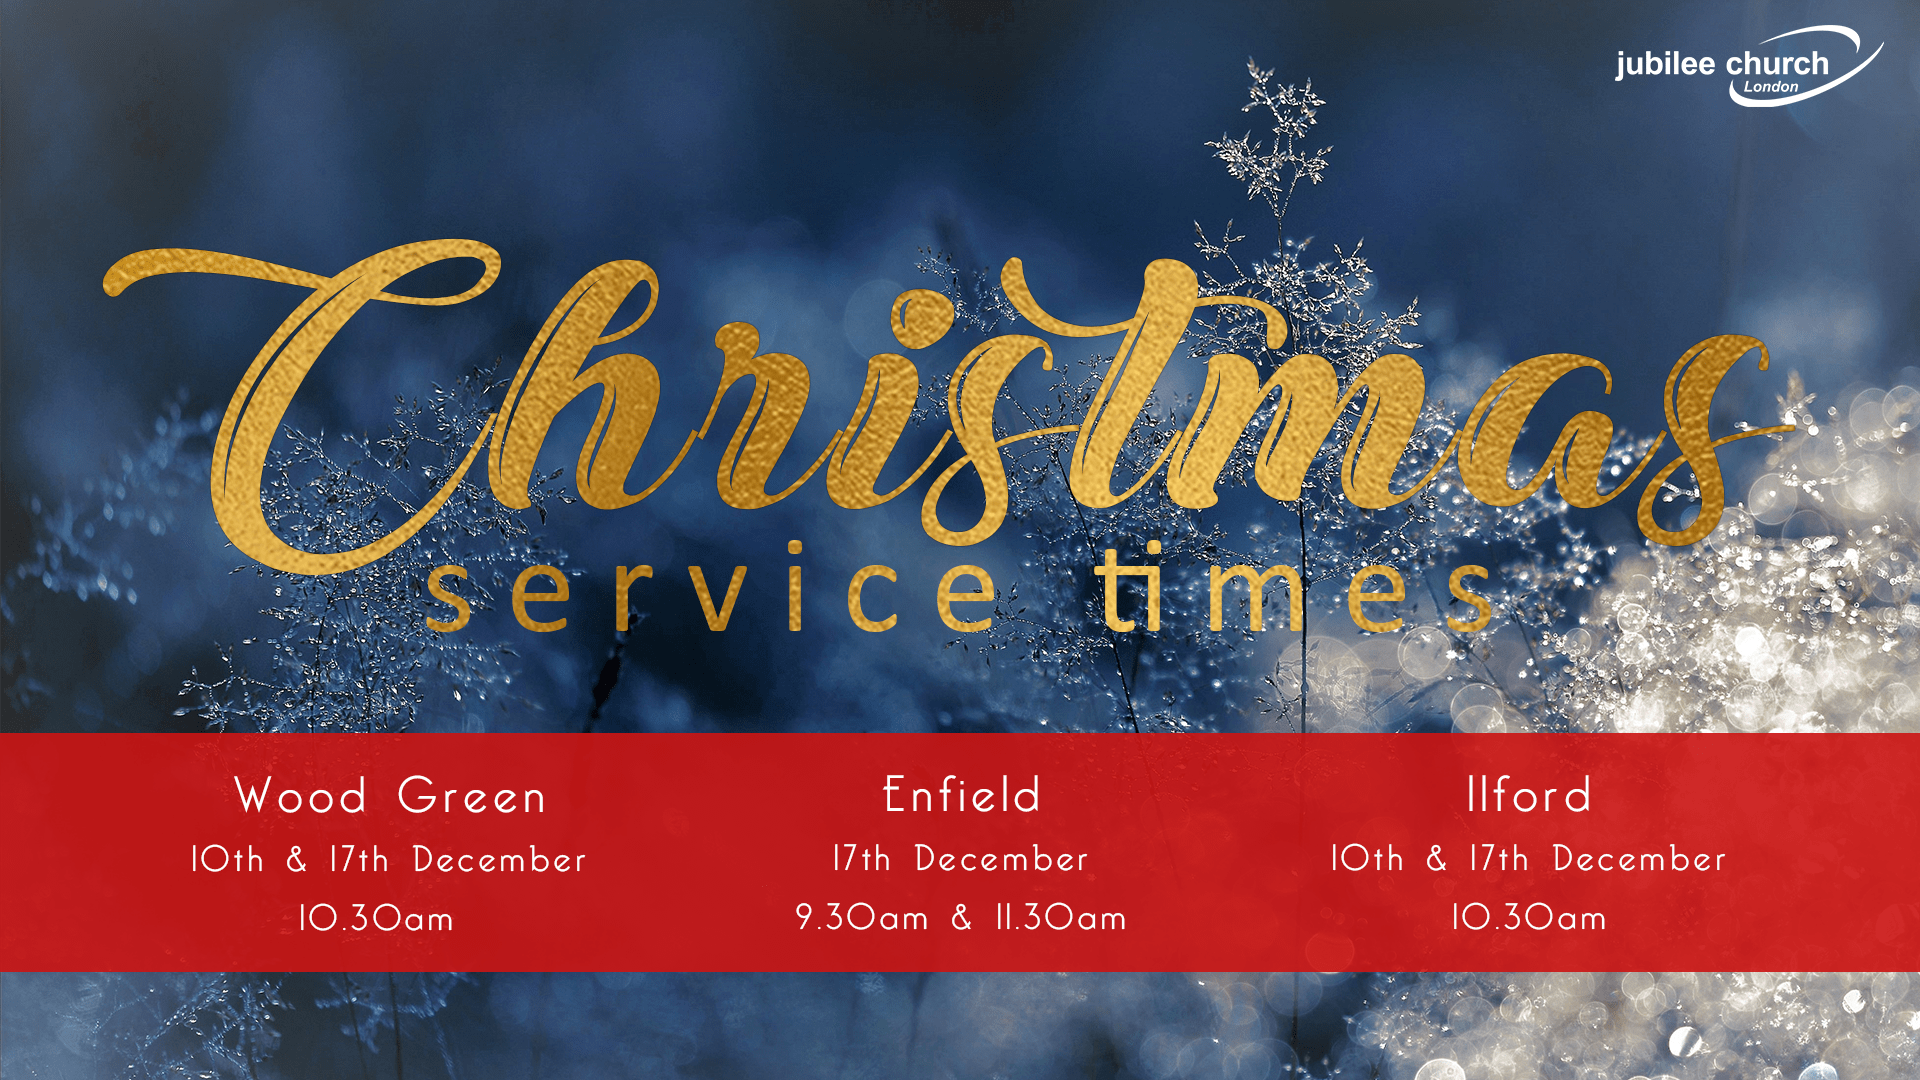 Christmas service times at Jubilee Church